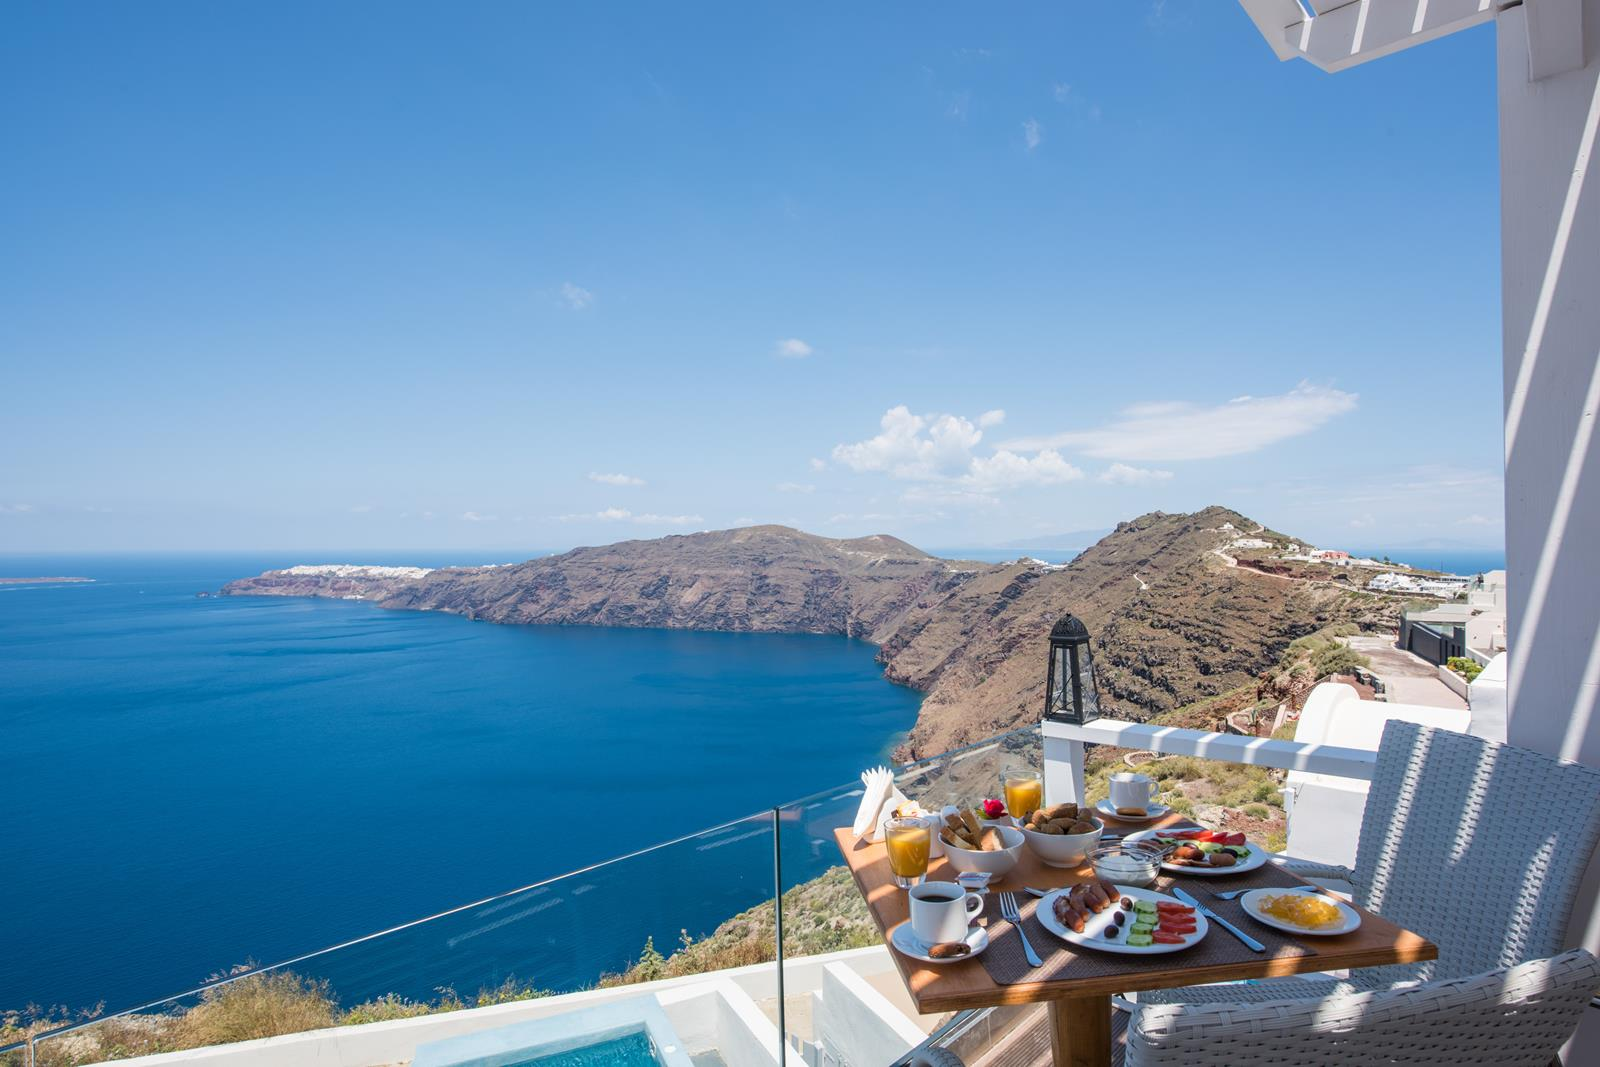 luxury hotel santorini - Gizis Exclusive Santorini Greece